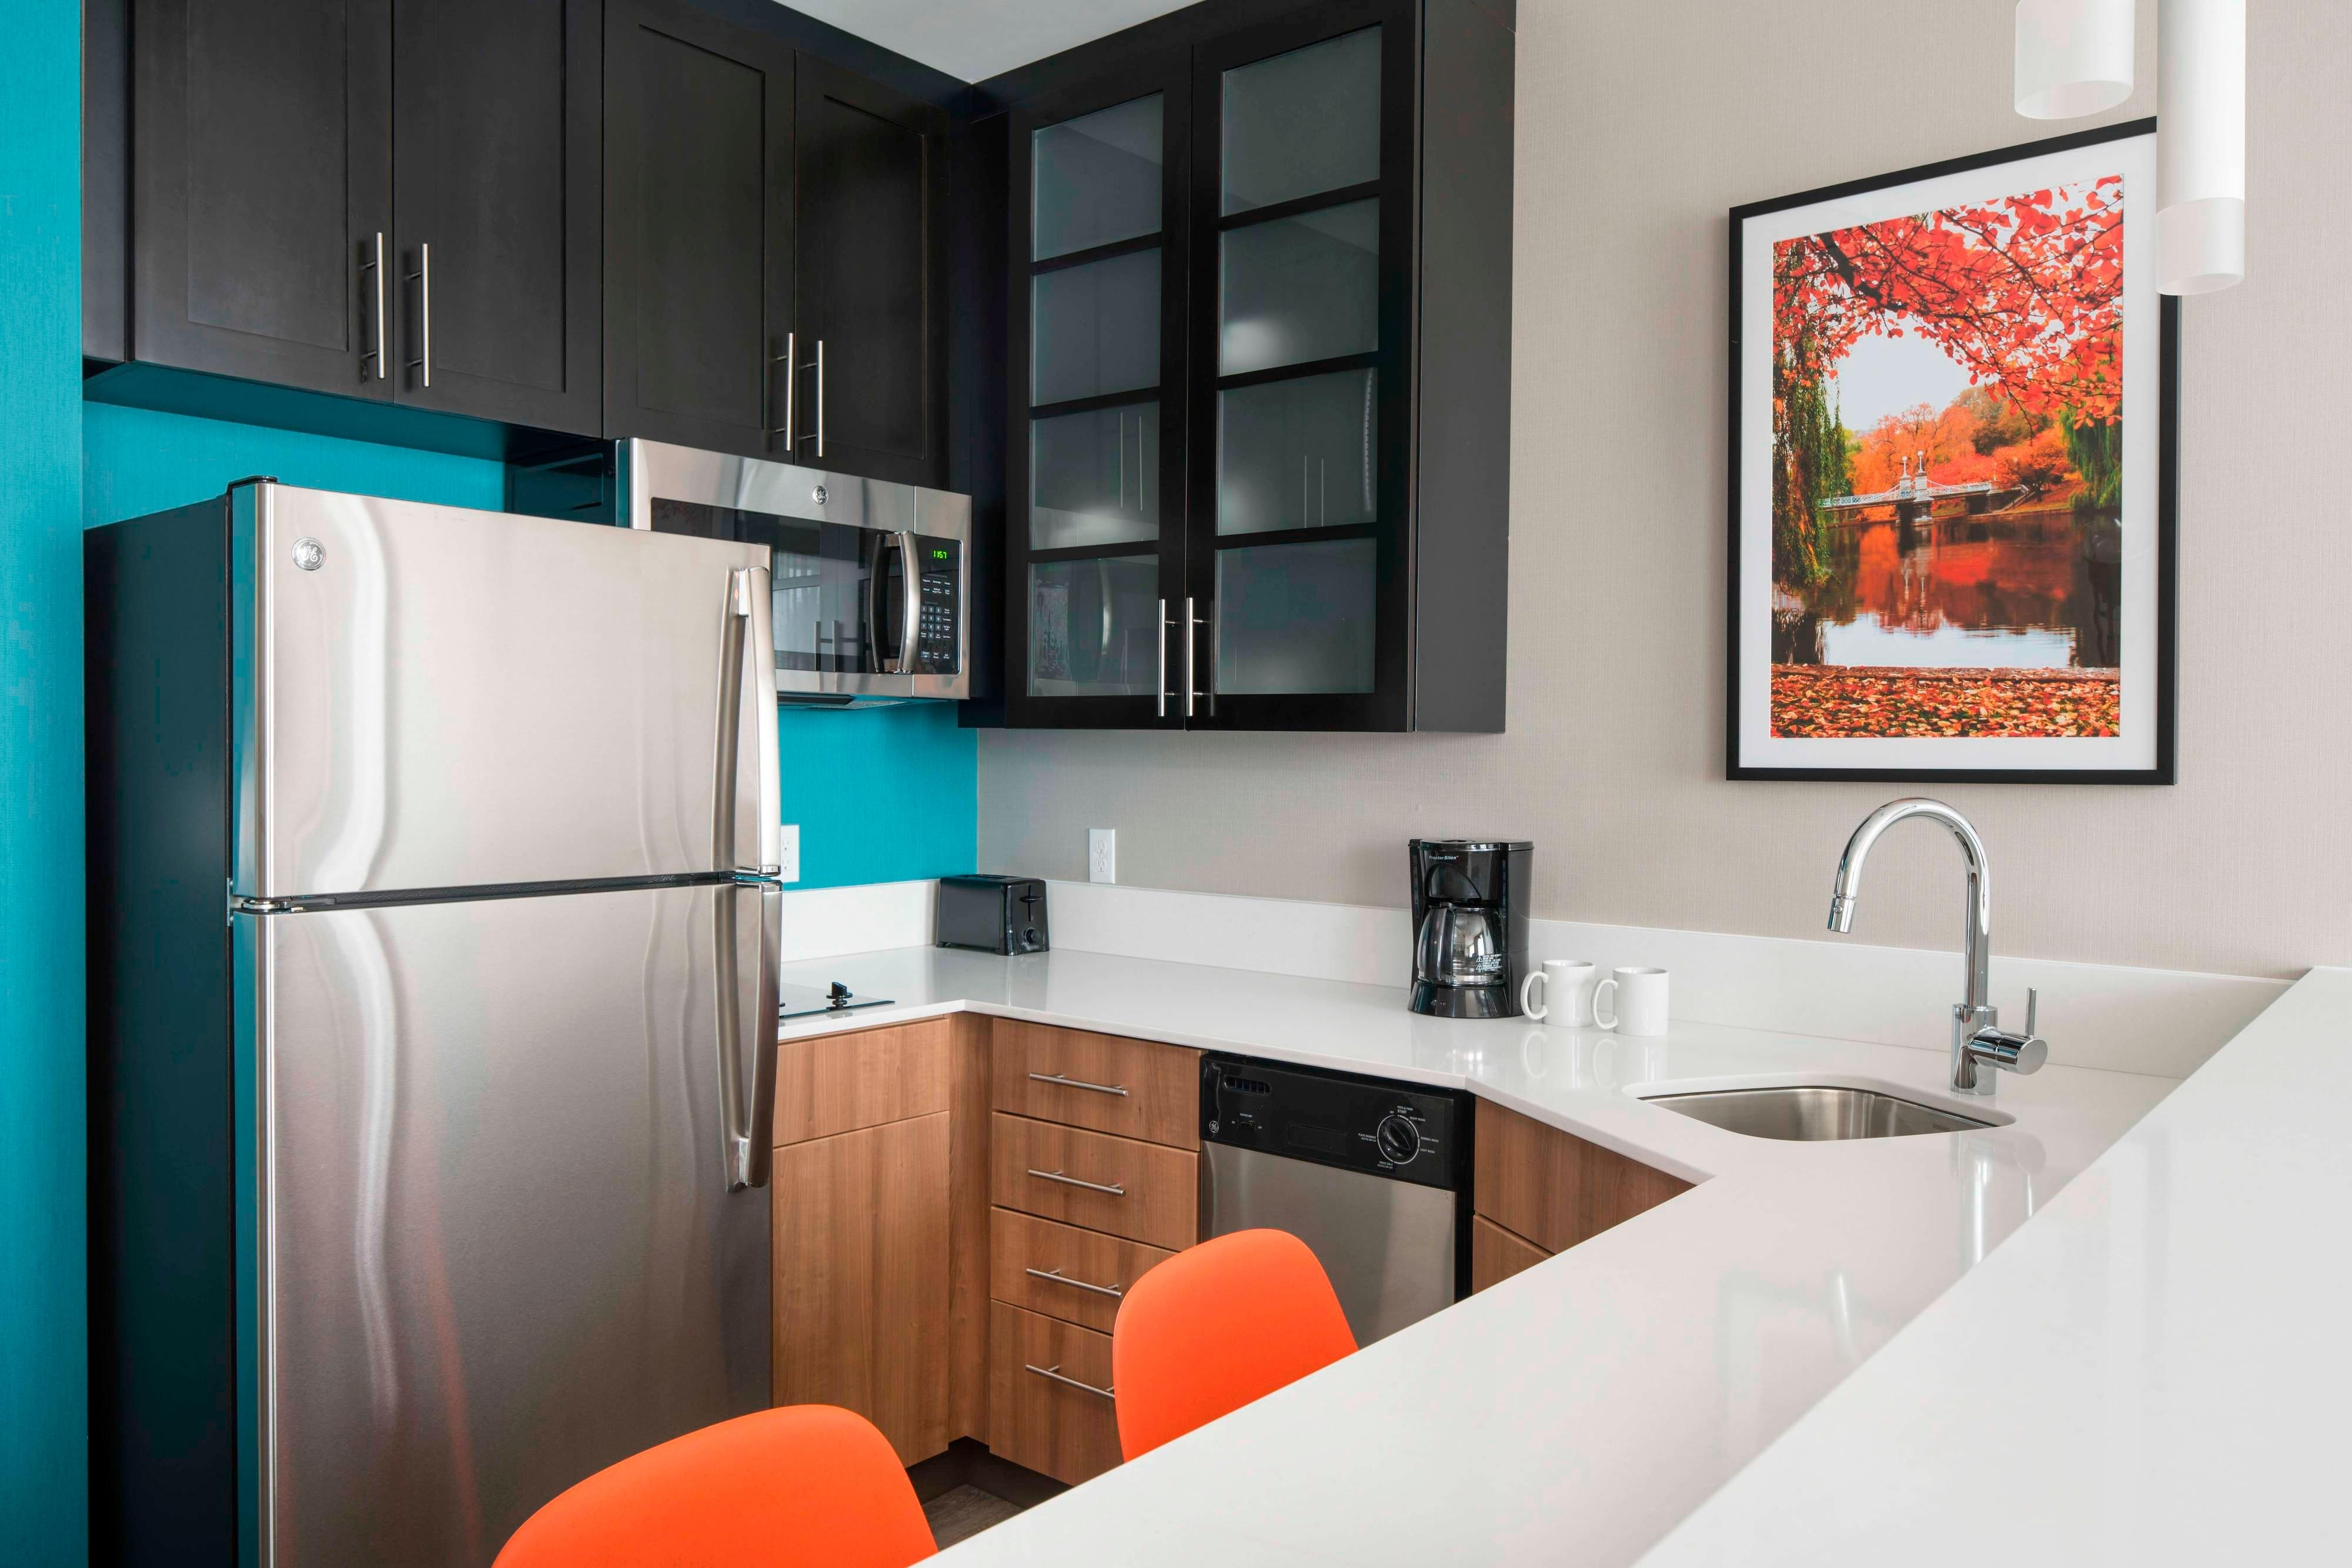 Boston watertown hotels extended stay hotel boston - Hotels with 2 bedroom suites in boston ma ...